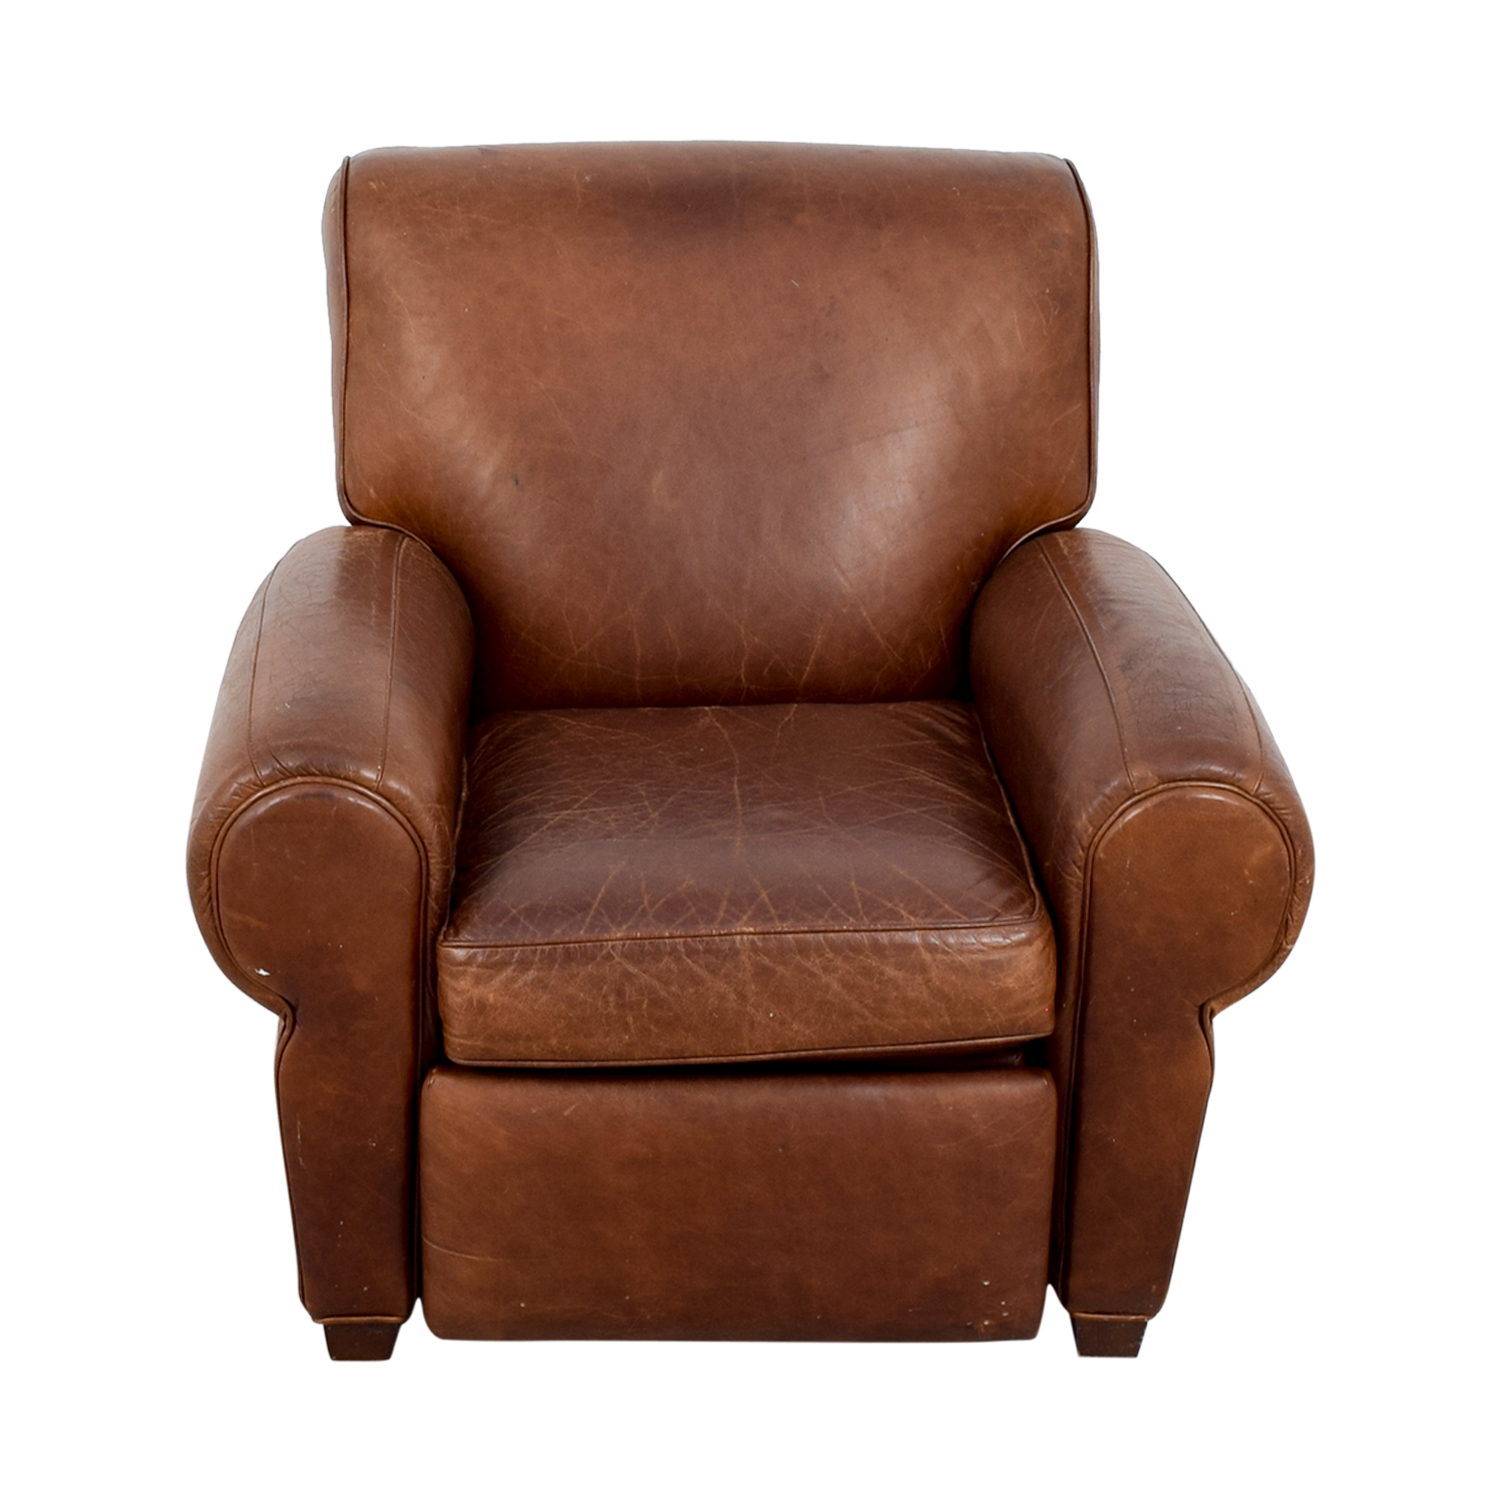 90 Off Natuzzi Natuzzi Black Leather Swivel Chair With